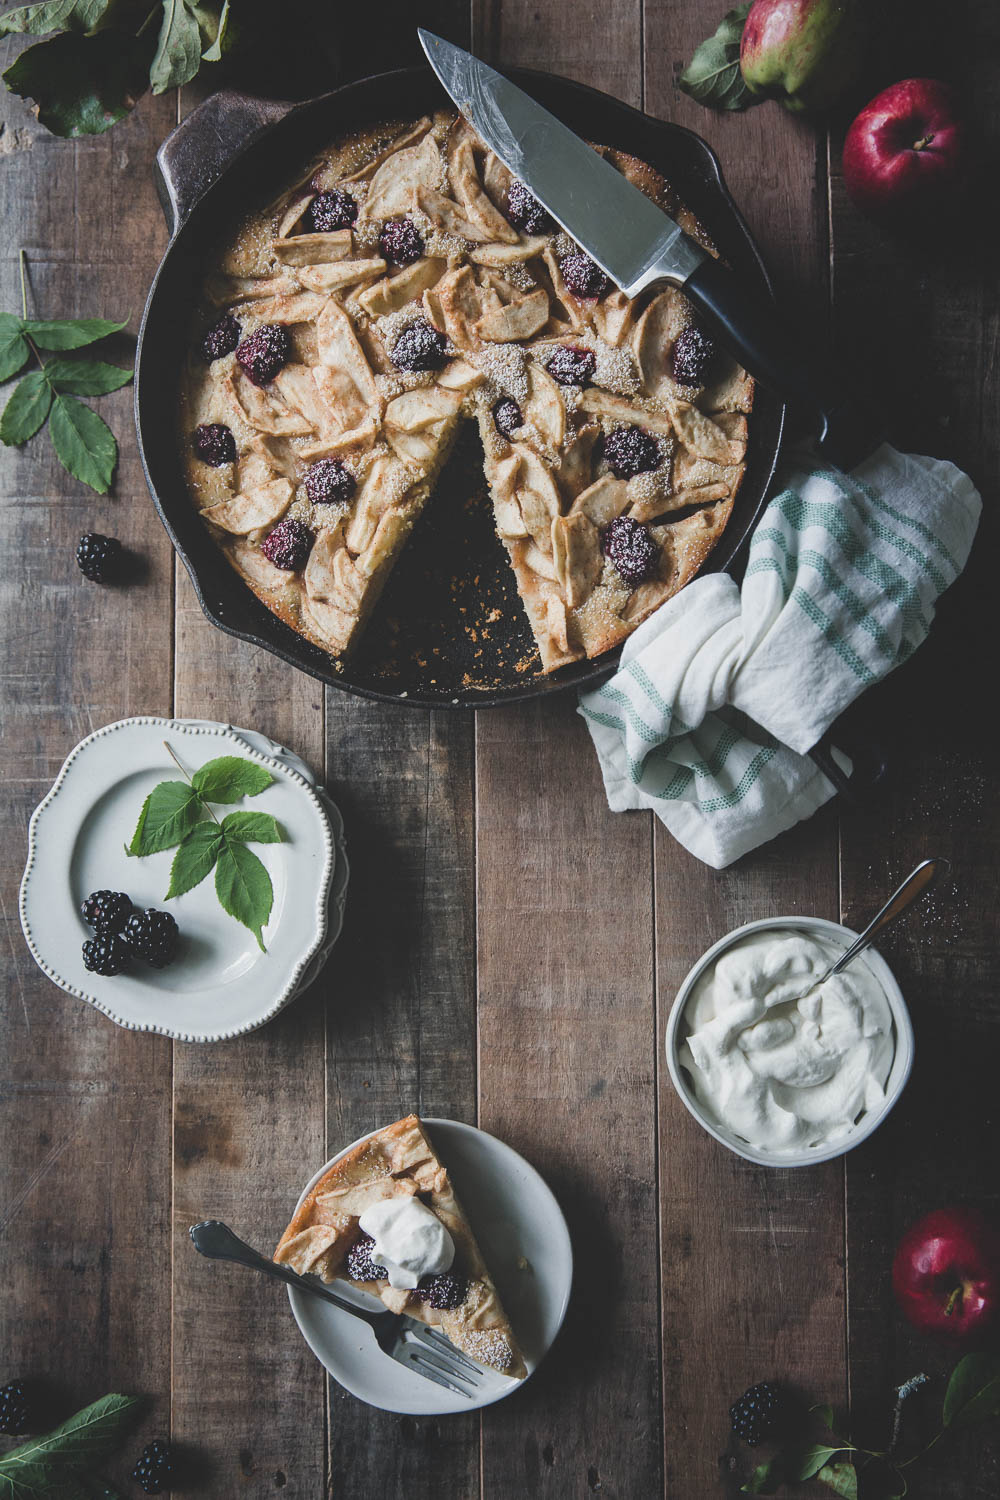 Bragg_Kate_Apple_Blackberry_Skillet_Cake-3358.jpg